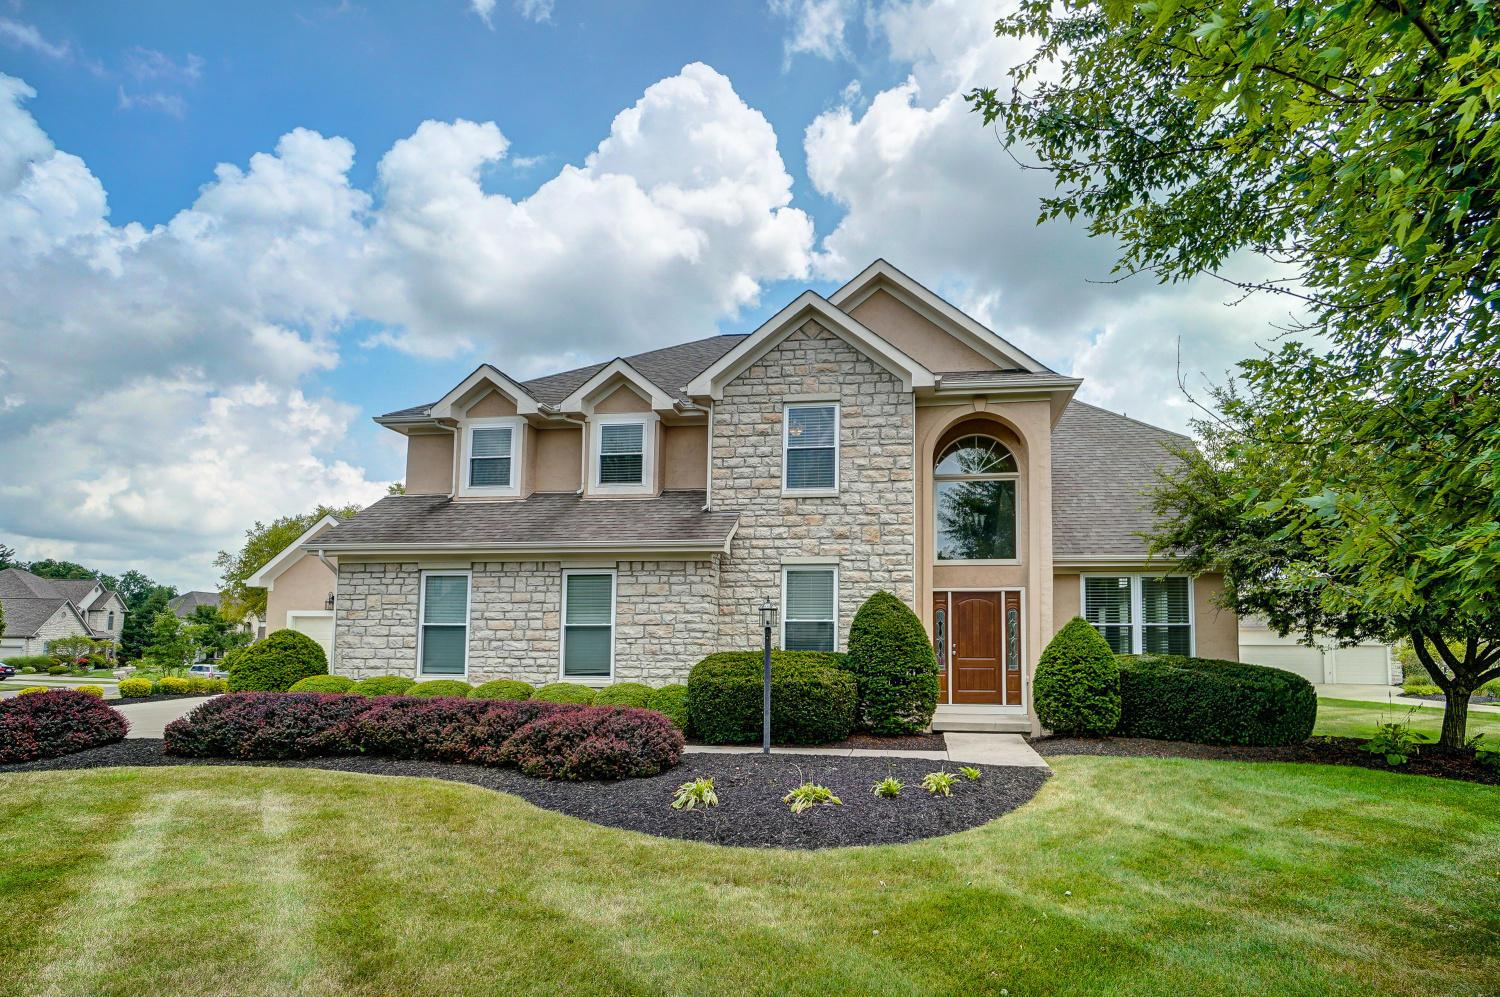 Photo of 5101 Medallion Drive W, Westerville, OH 43082